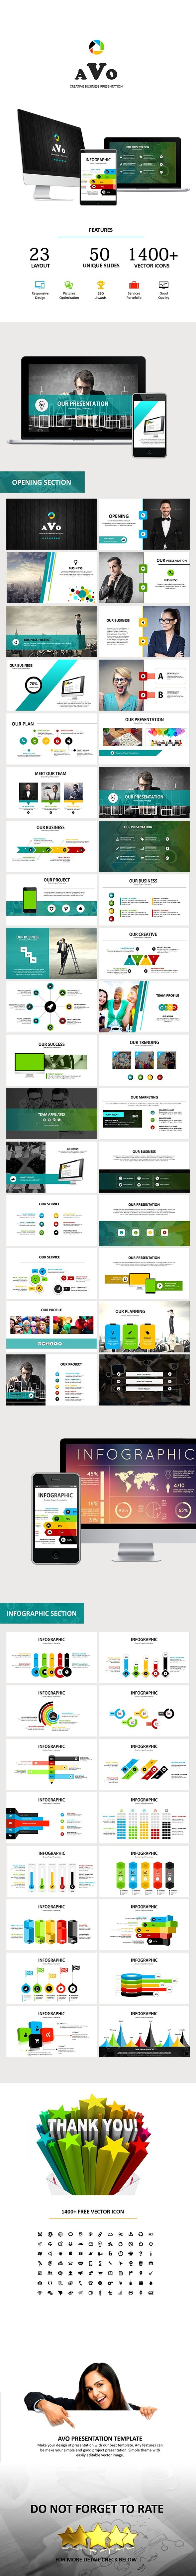 AVO - Powerpoint Business Presentation - PowerPoint Templates Presentation Templates